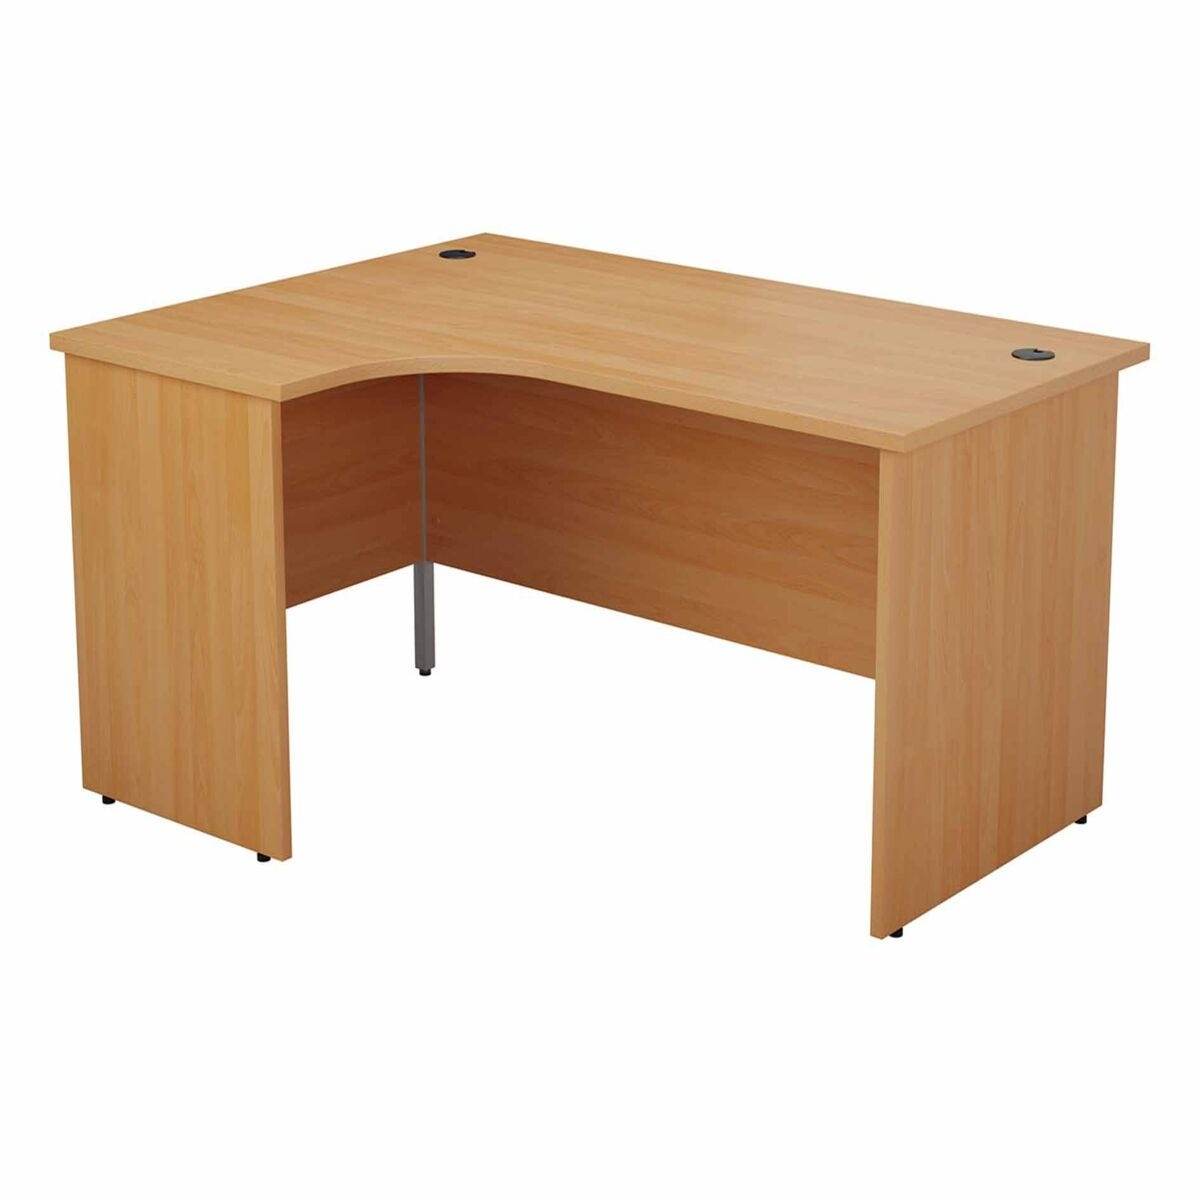 TC Office Left Hand Crescent Desk with Panel End Legs 1800 x 1200mm